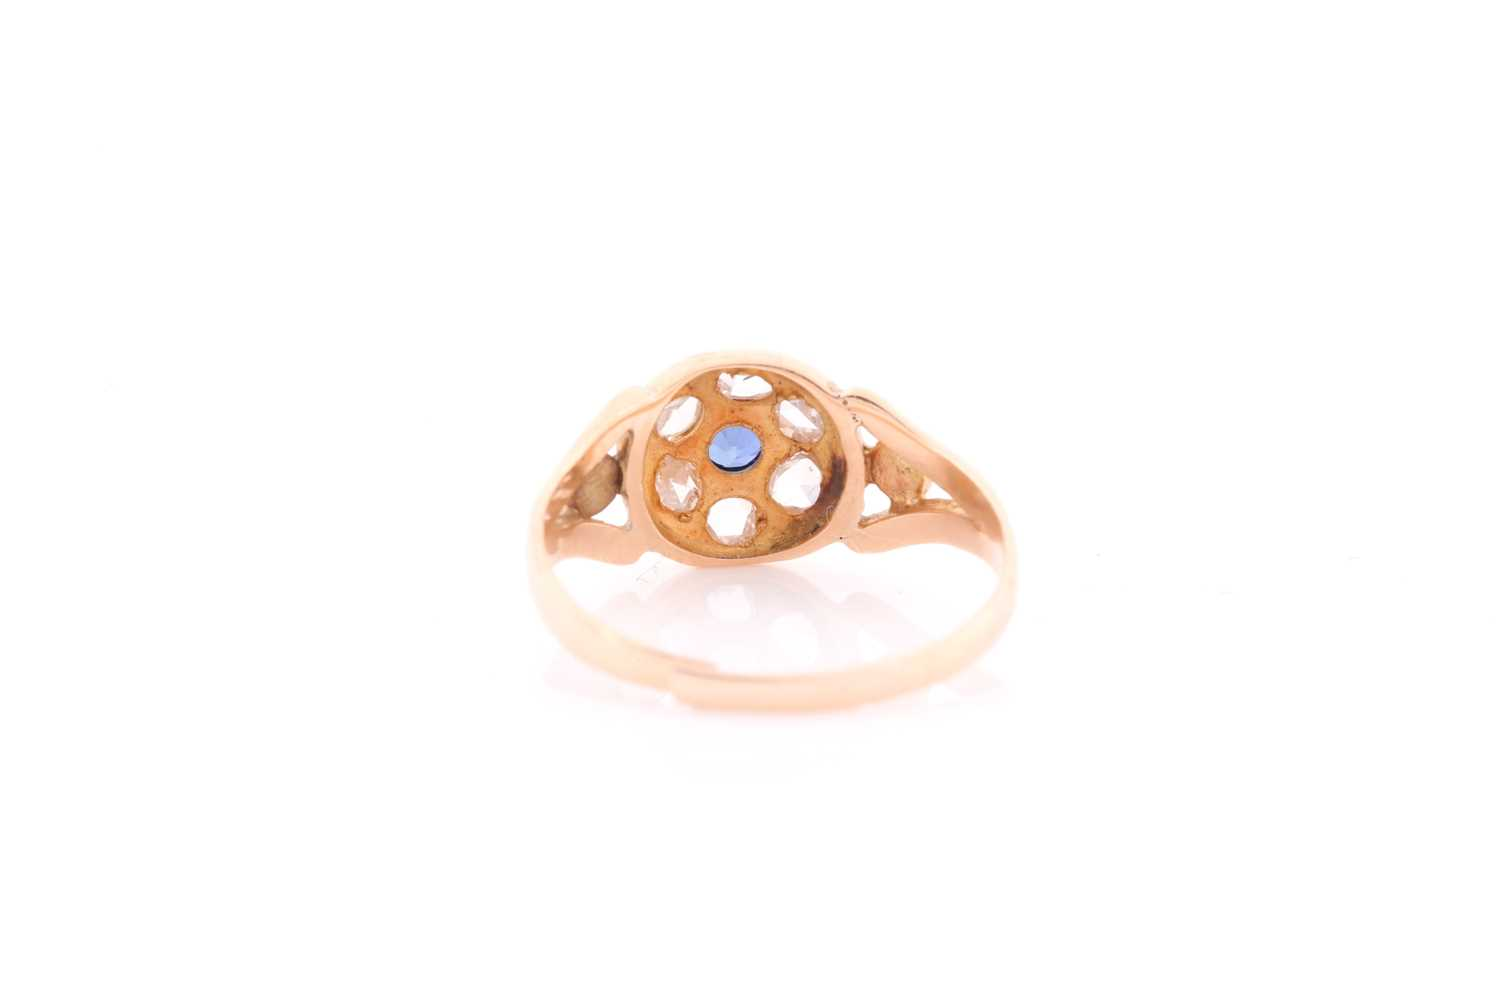 A yellow metal, diamond, and sapphire ring, set with a small round sapphire, within a border of - Image 3 of 4